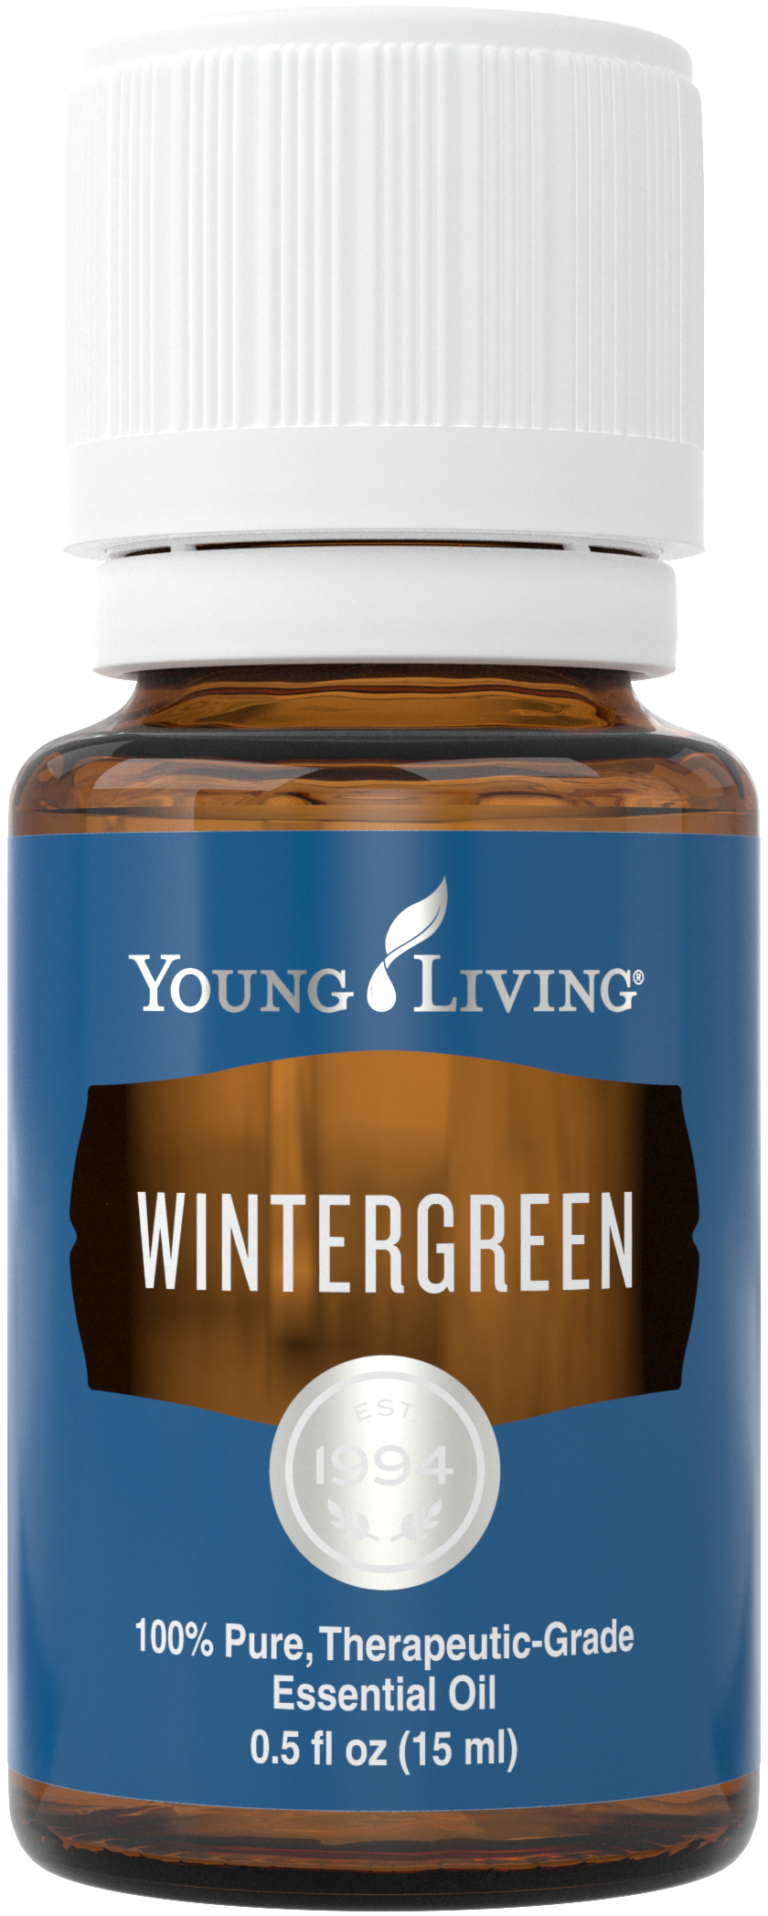 wintergreen_15ml_silo_us_2016_24159547299_o